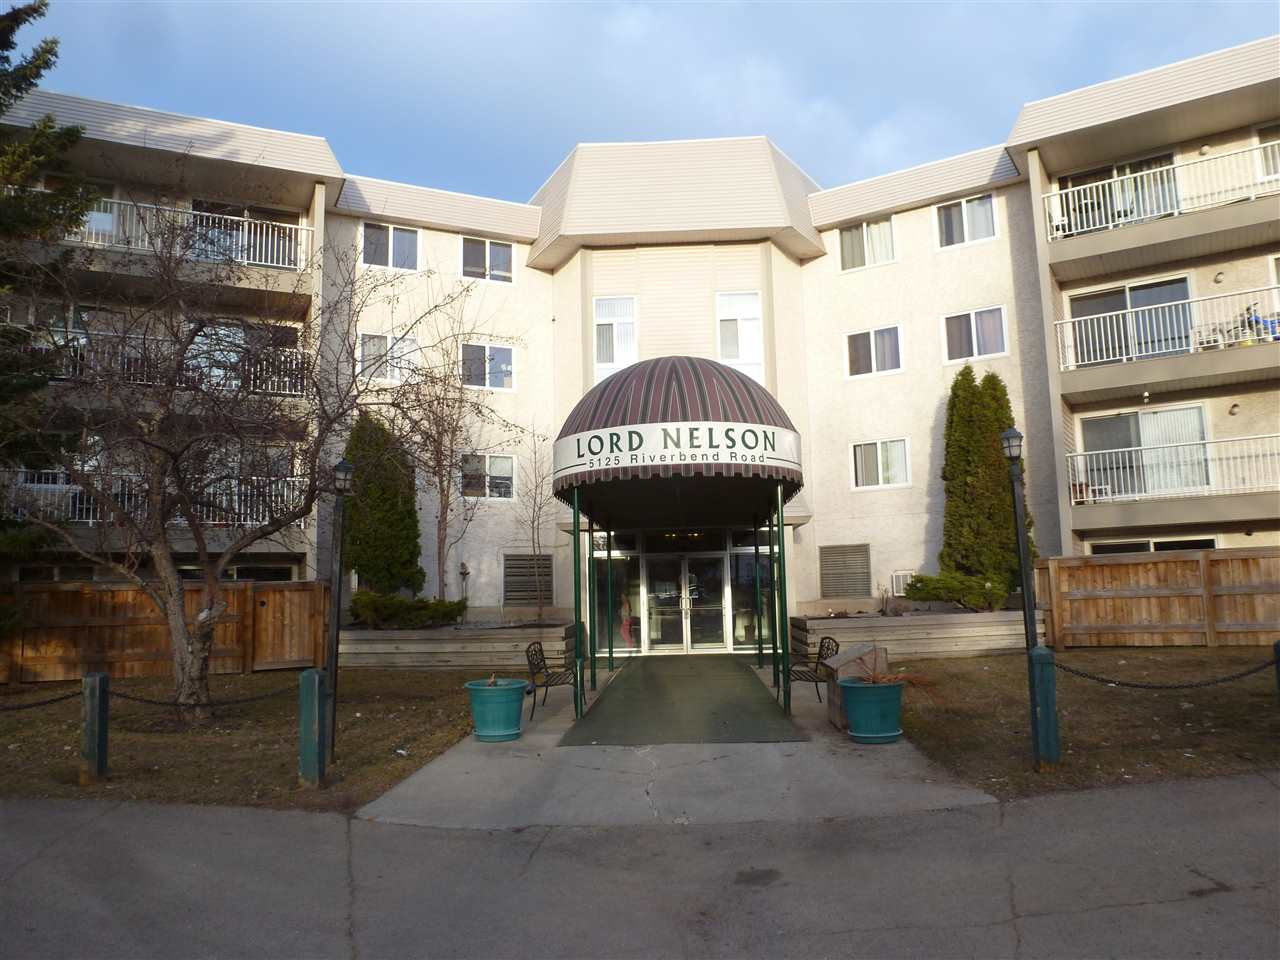 **New Price - $209,900** for this very spacious 3-Bedroom/2 Bathroom Condo(1150 Sq Ft) on the 3rd Floor at the Lord Nelson in Riverbend/Brandner Gardens. Features newer laminate flooring, windows and  upgraded blinds, galley kitchen, Balcony. Massive and marvellous black wall unit in Living Room will stay. Comes with 2 Outside Parking Stalls. The Lord Nelson also features an Indoor Swimming Pool and HotTub off the main floor. Guest Suites and Visitor Parking is also available. Great location too - close to schools ande with quick access to the Whitemud Freeway.